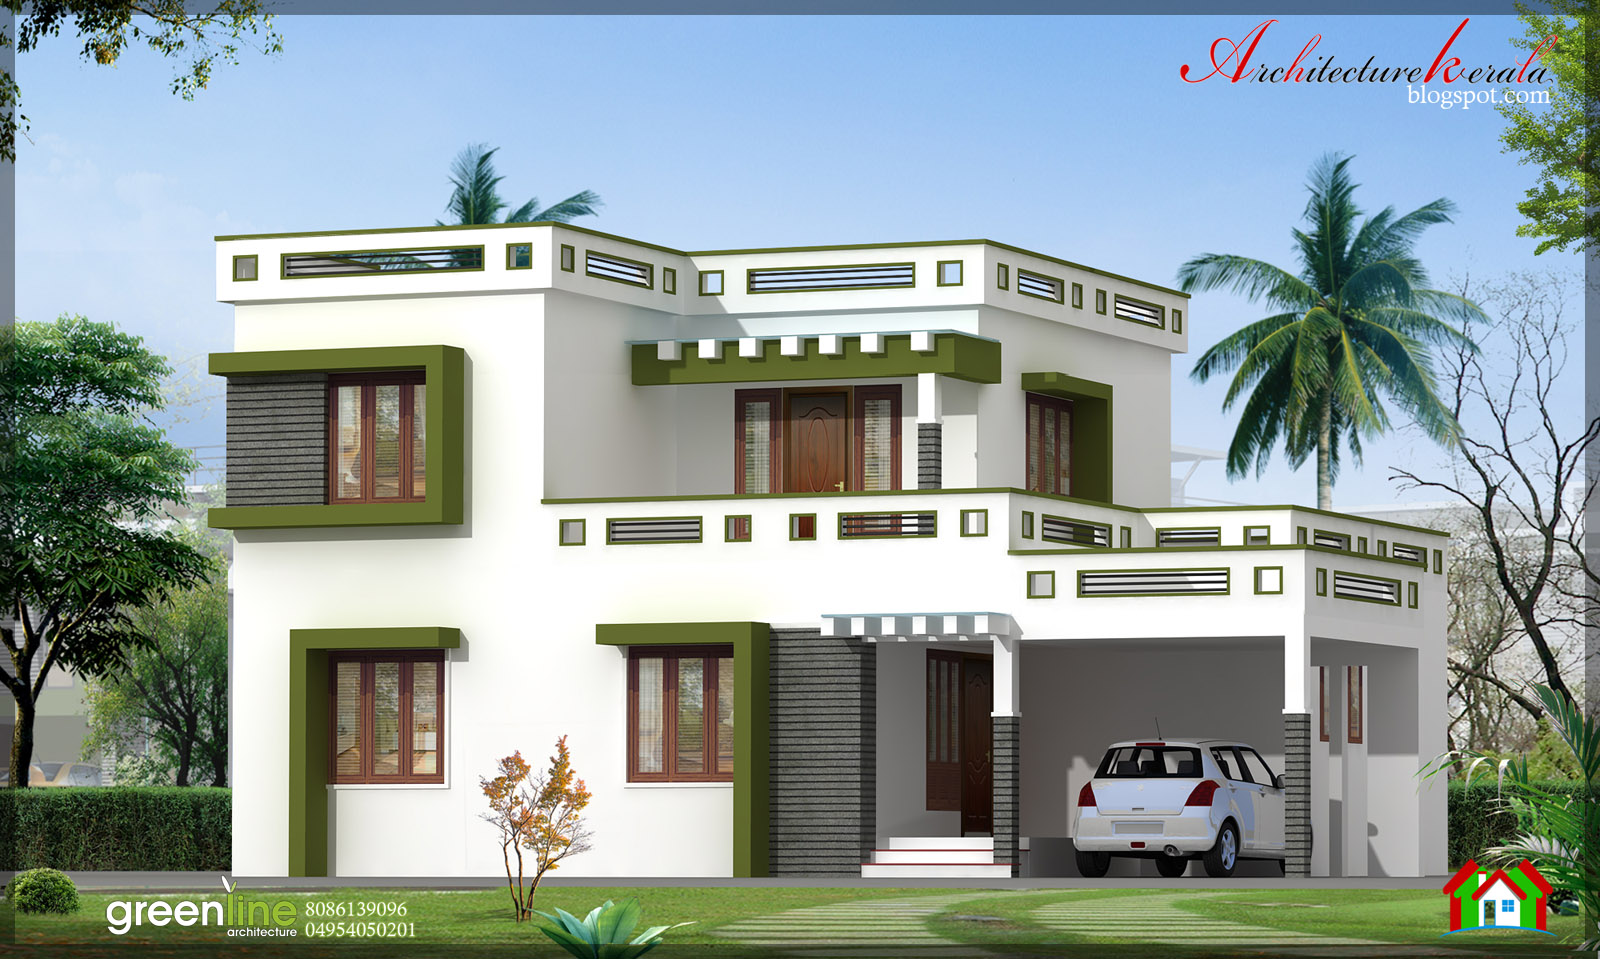 Architecture kerala 3 bhk new modern style kerala home design in 1700 sq ft Home building architecture